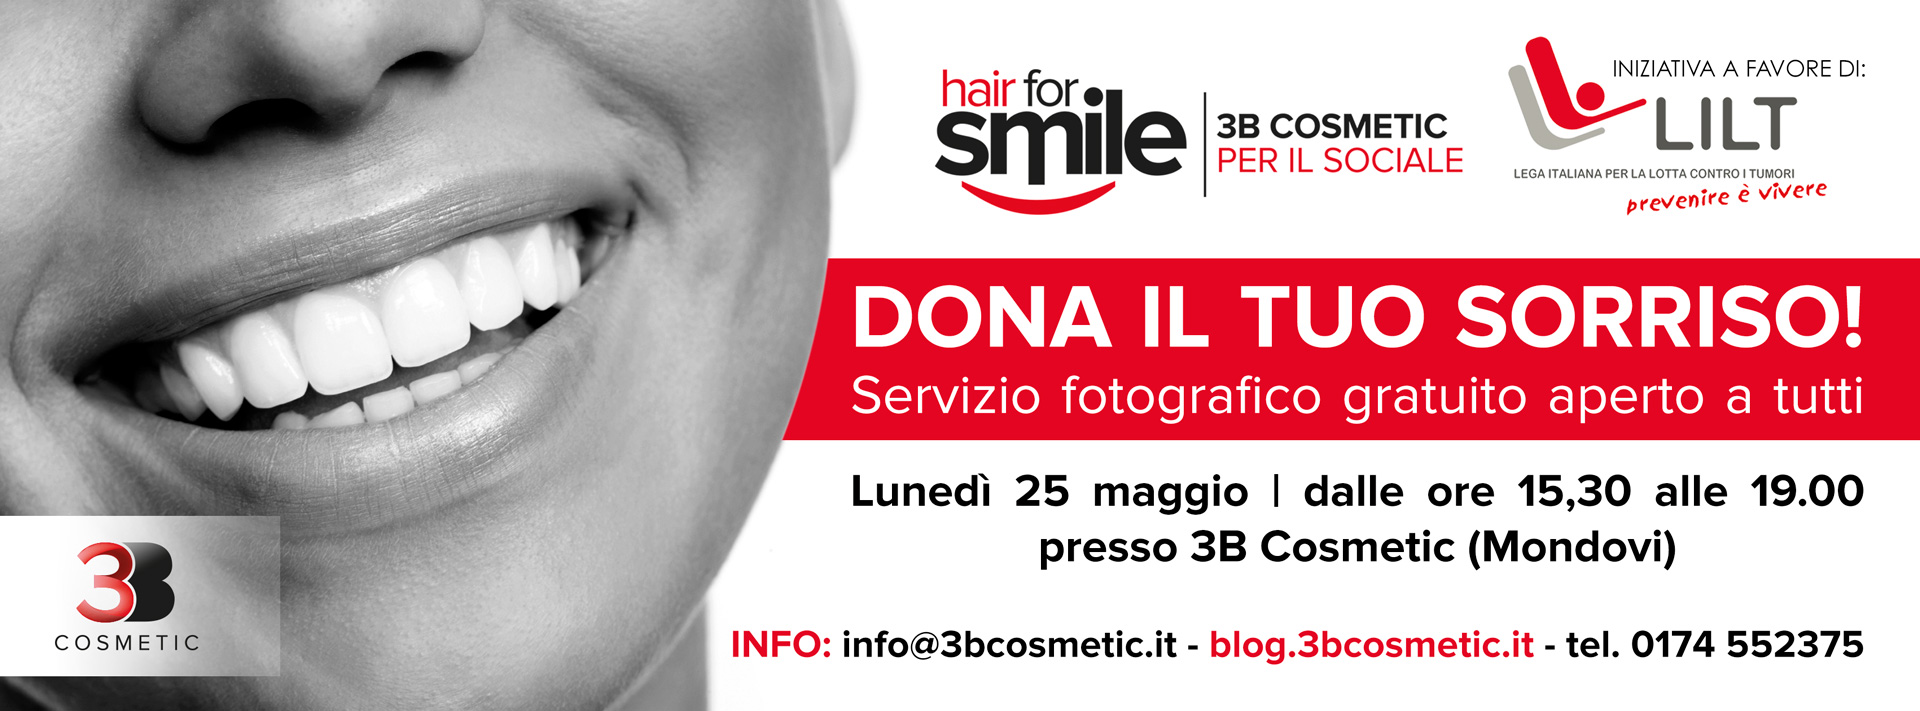 Hair For Smile - Dona il tuo Sorriso